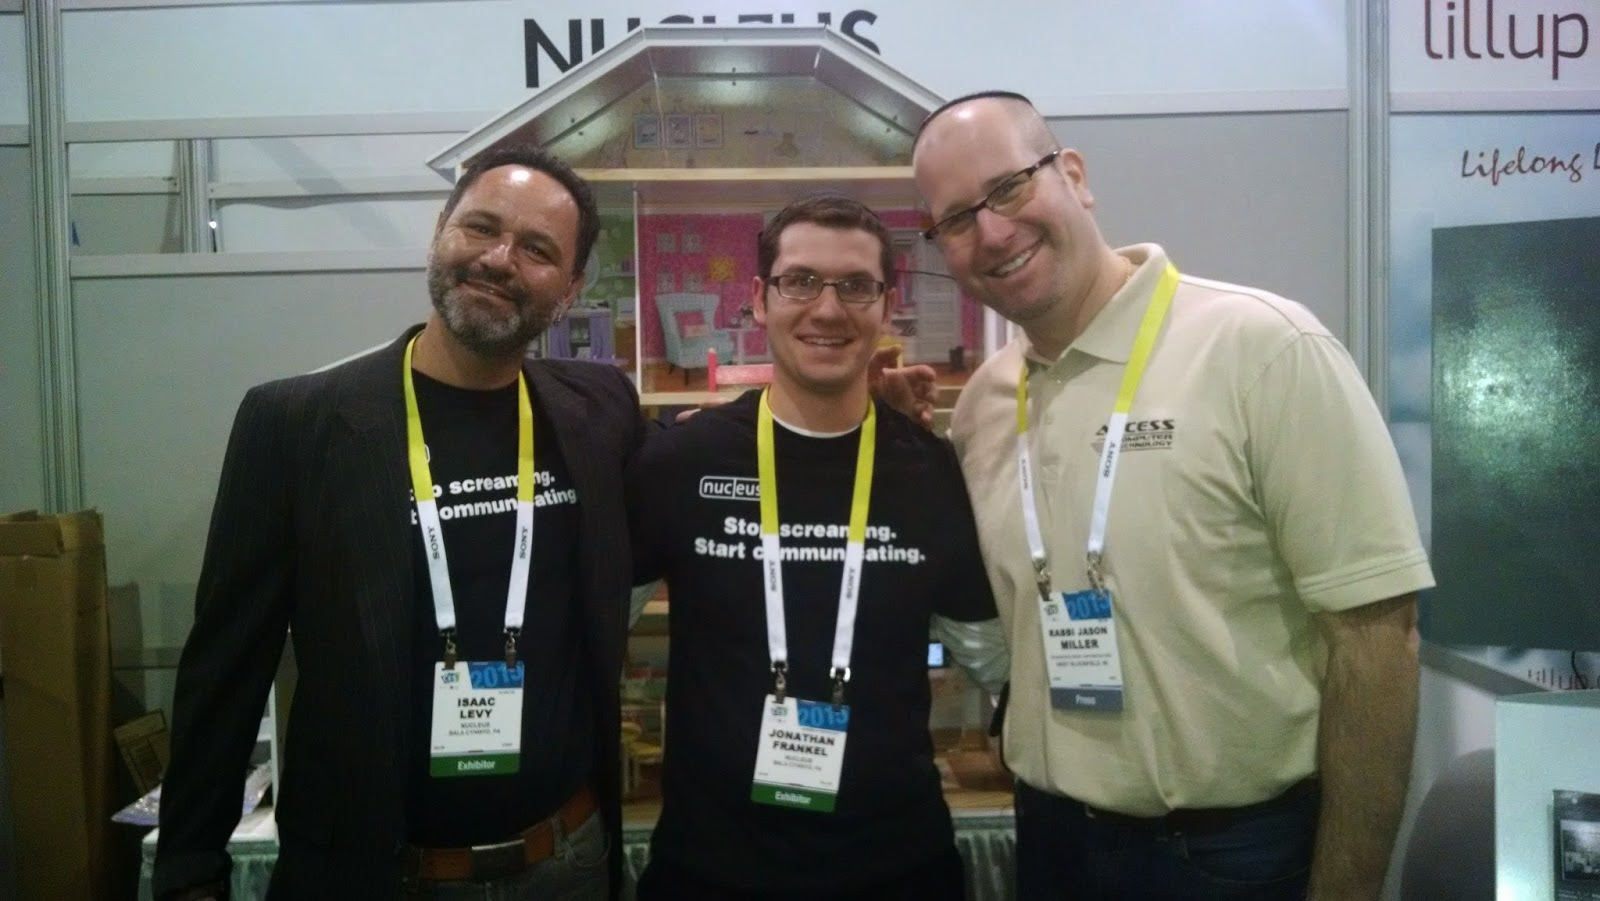 Rabbi Jason Miller with Isaac Levy and Rabbi Jonathan Frankel of Nucleus at CES 2015